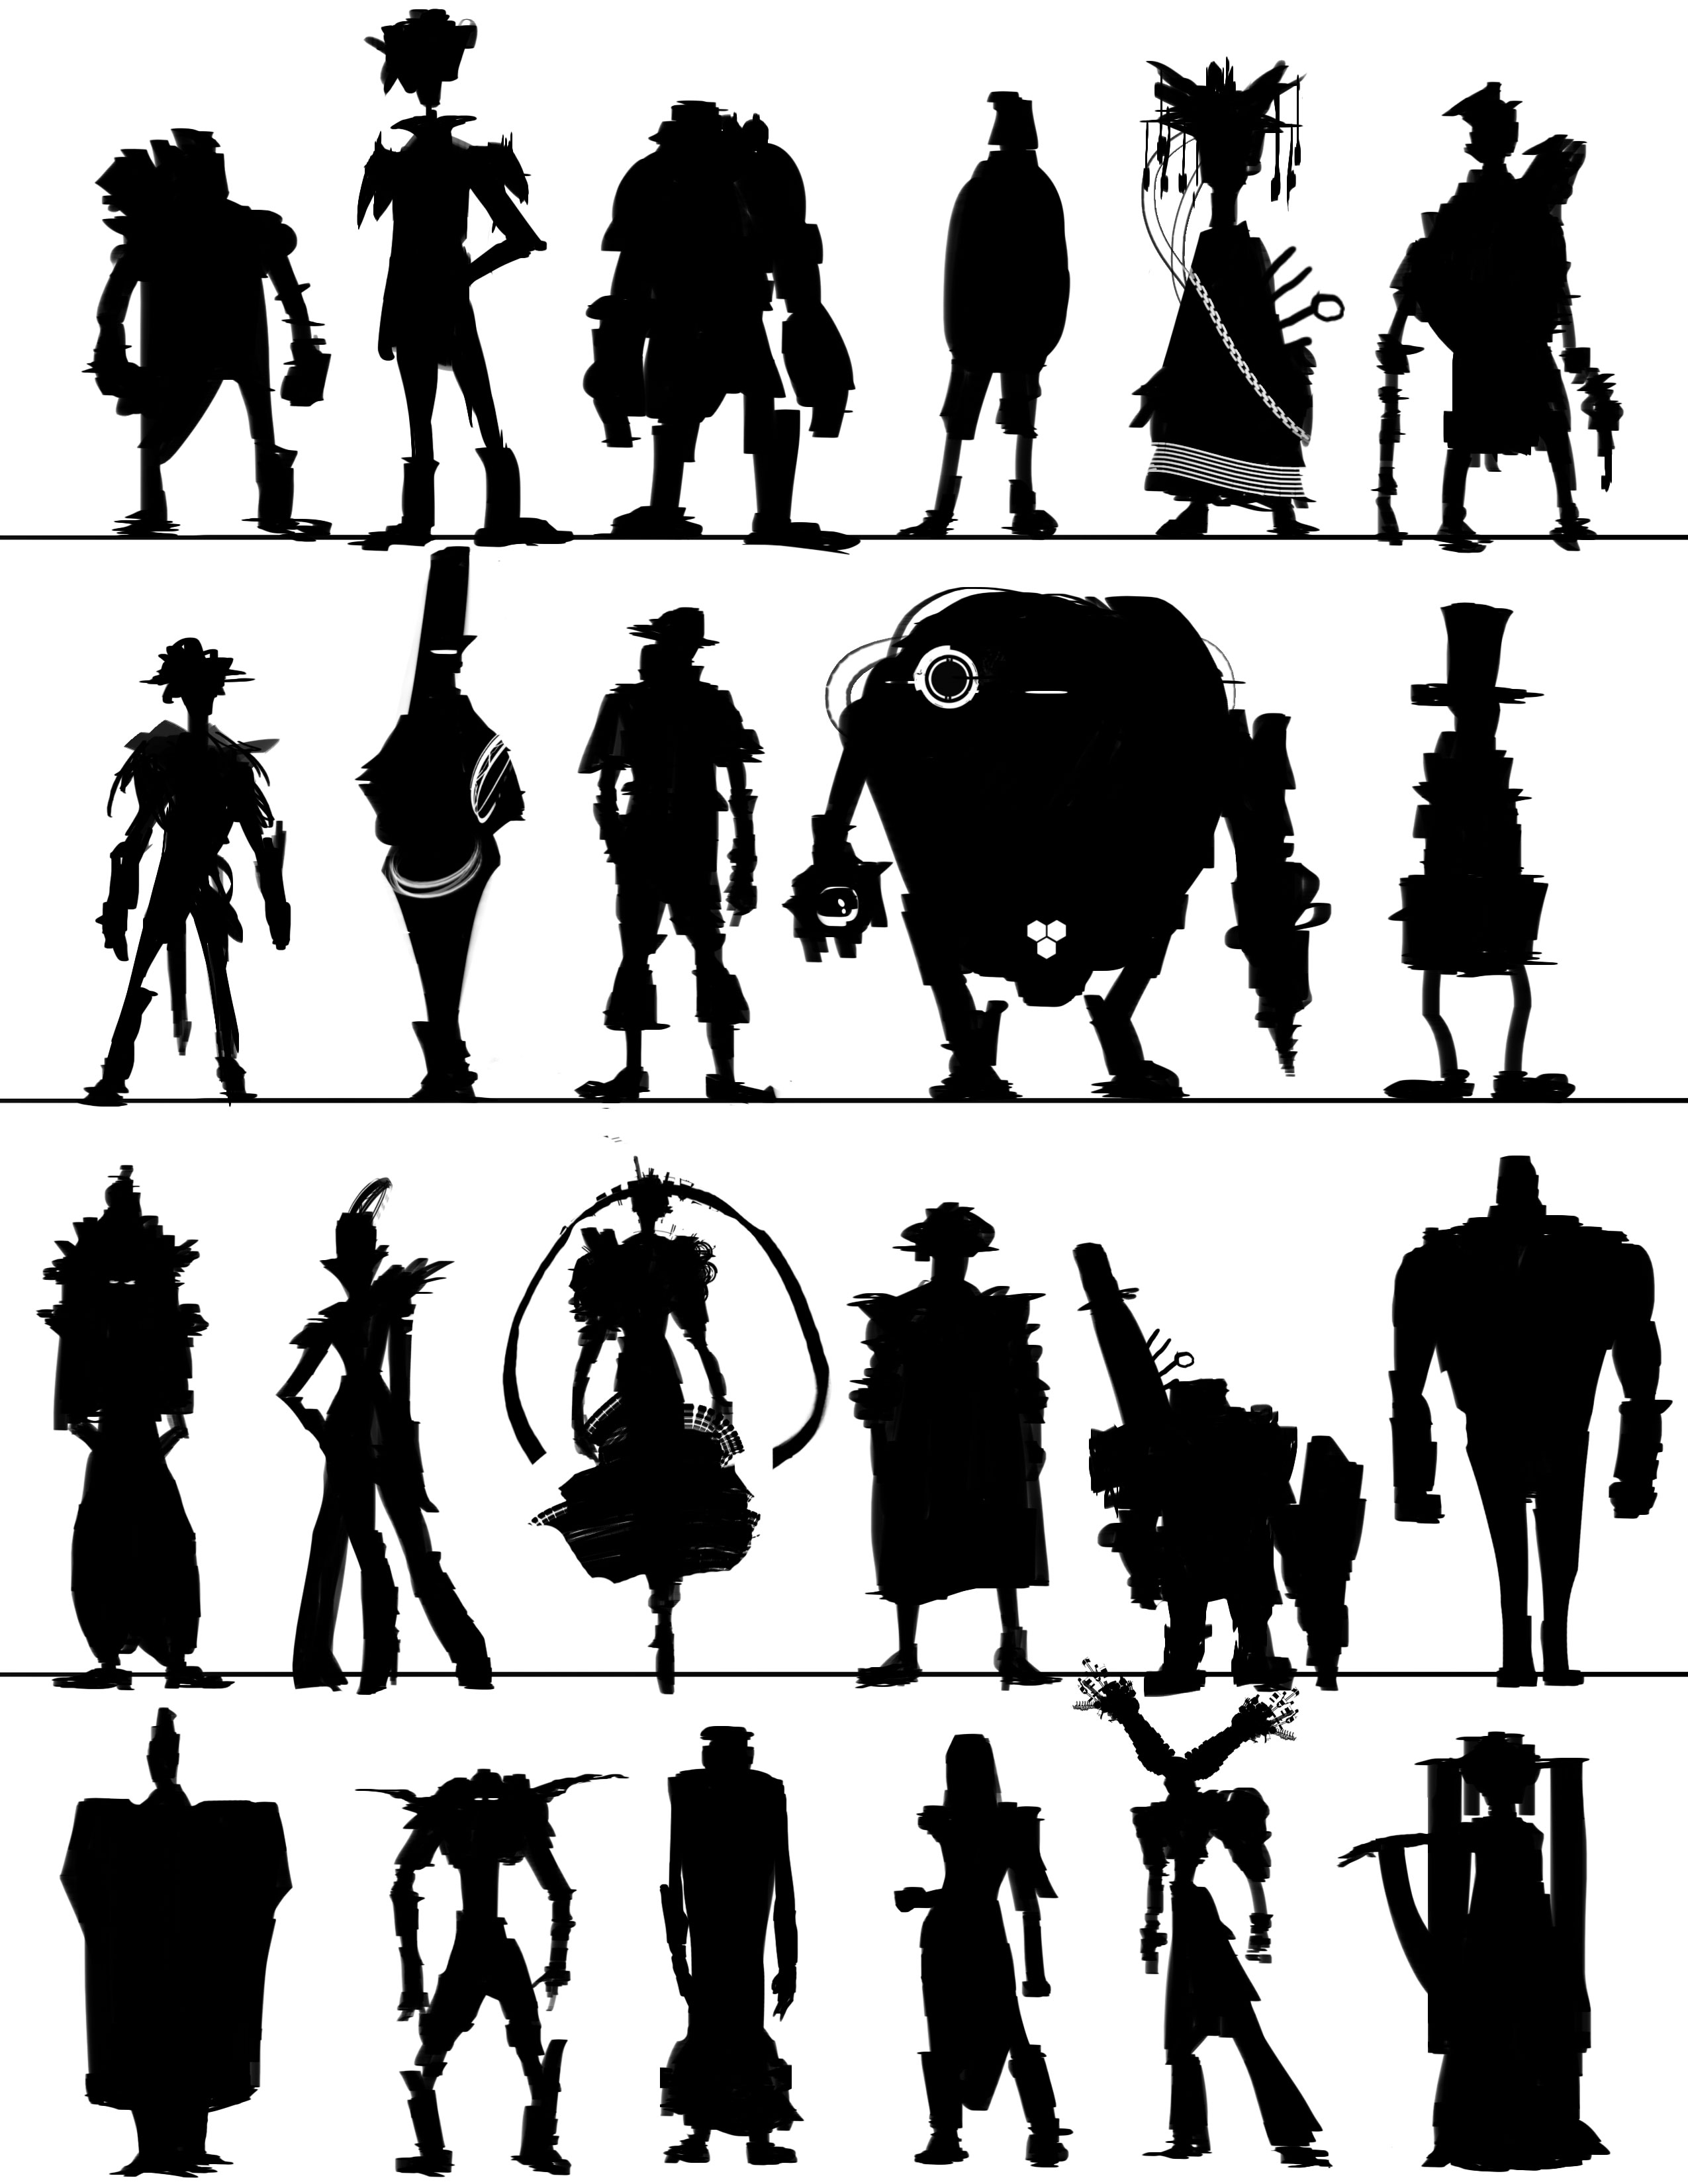 Character Design Silhouette : Best silhouette images on pinterest character design